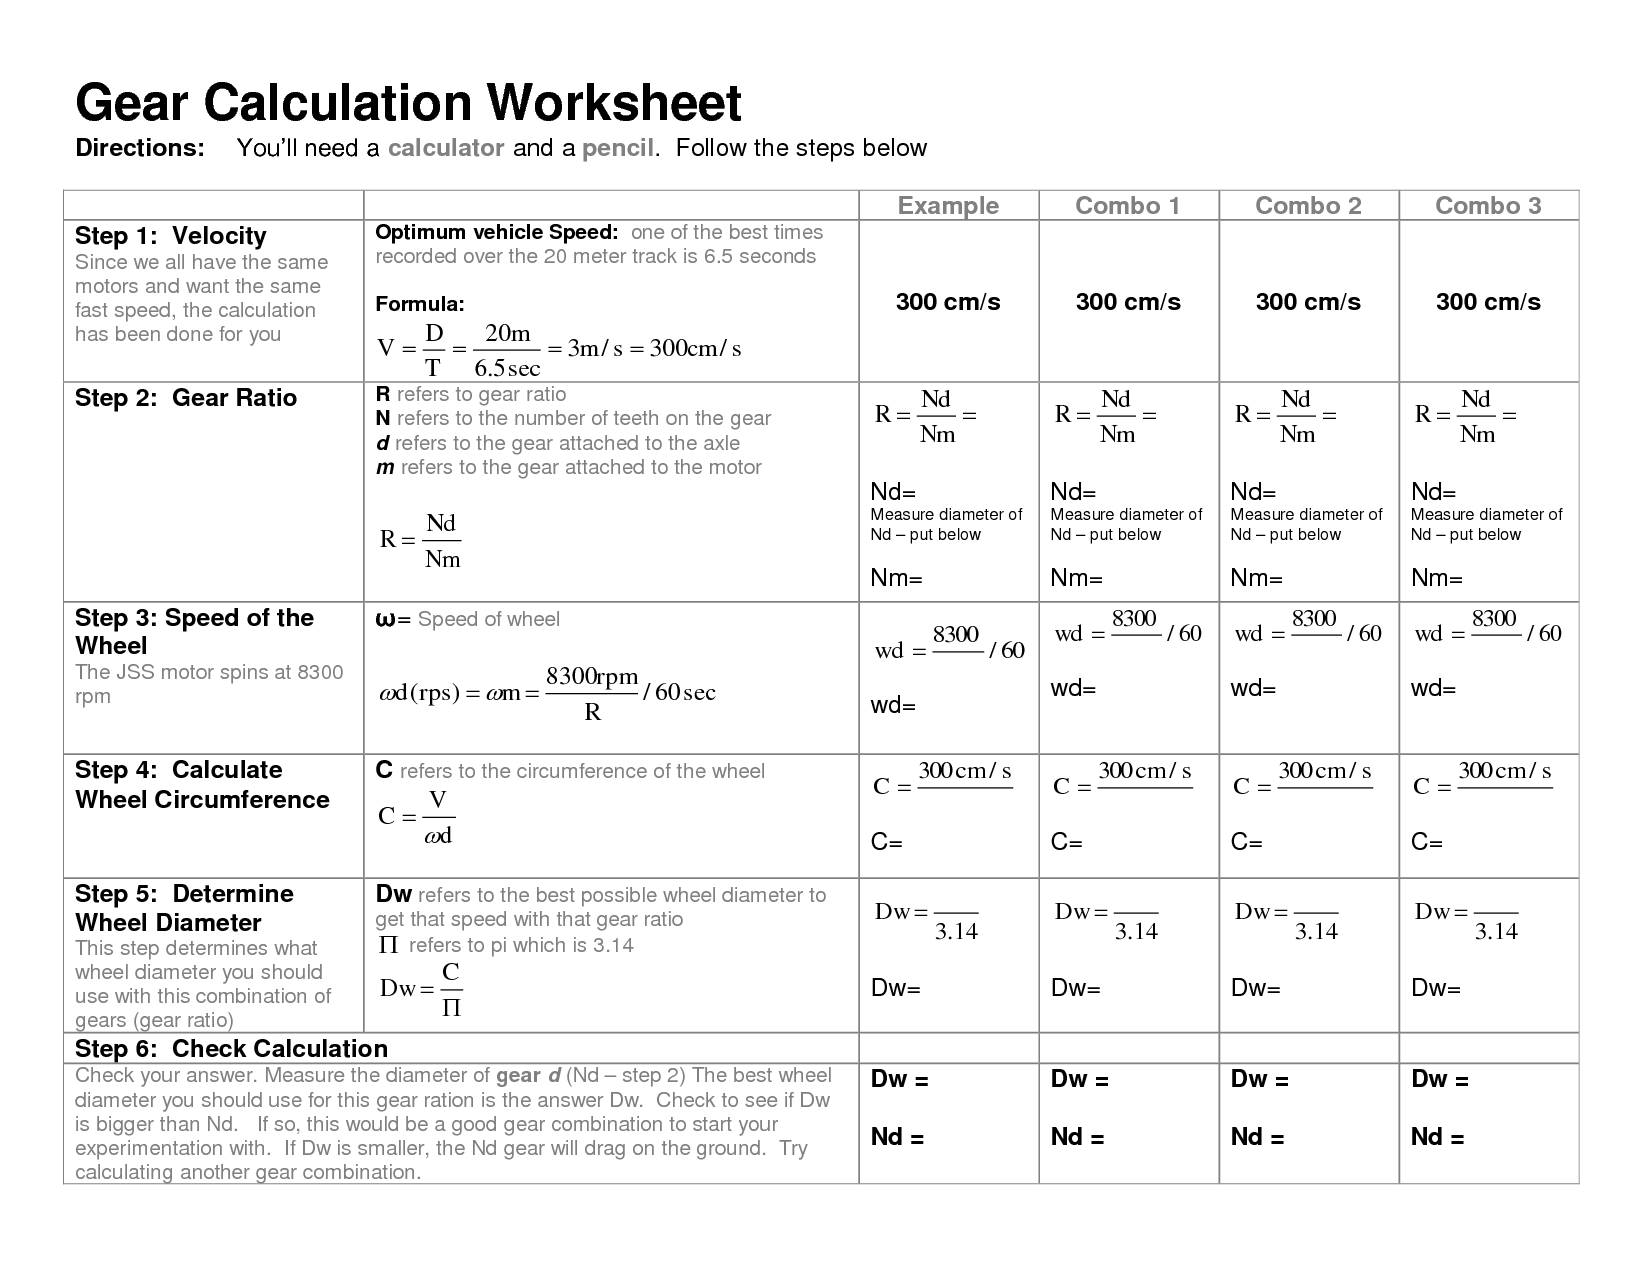 Gear Ratio Worksheet